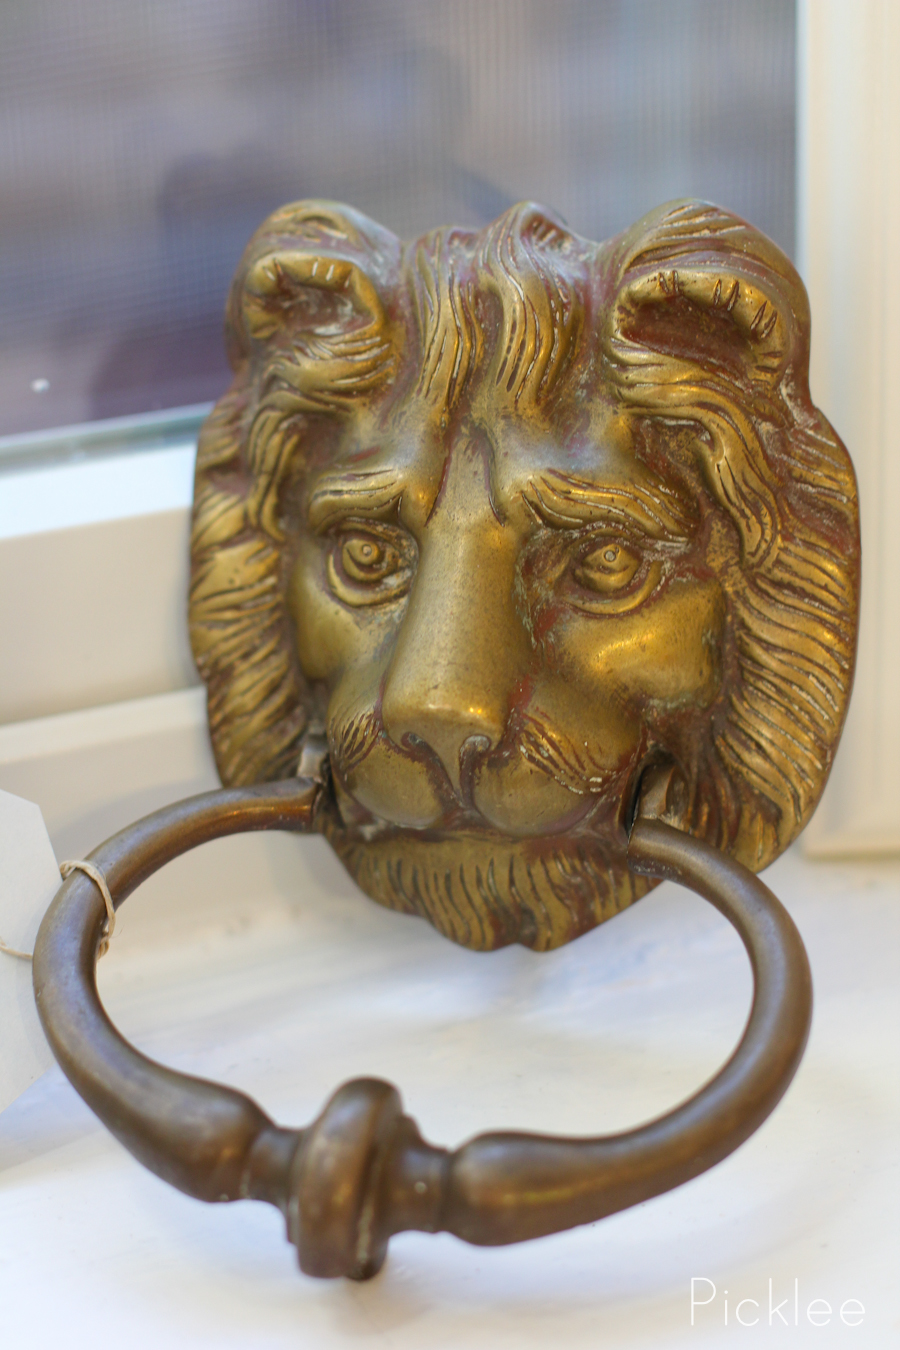 Brass Lion Head Door Knocker Vintage - Brass Lion Head Door Knocker - Picklee On Spring